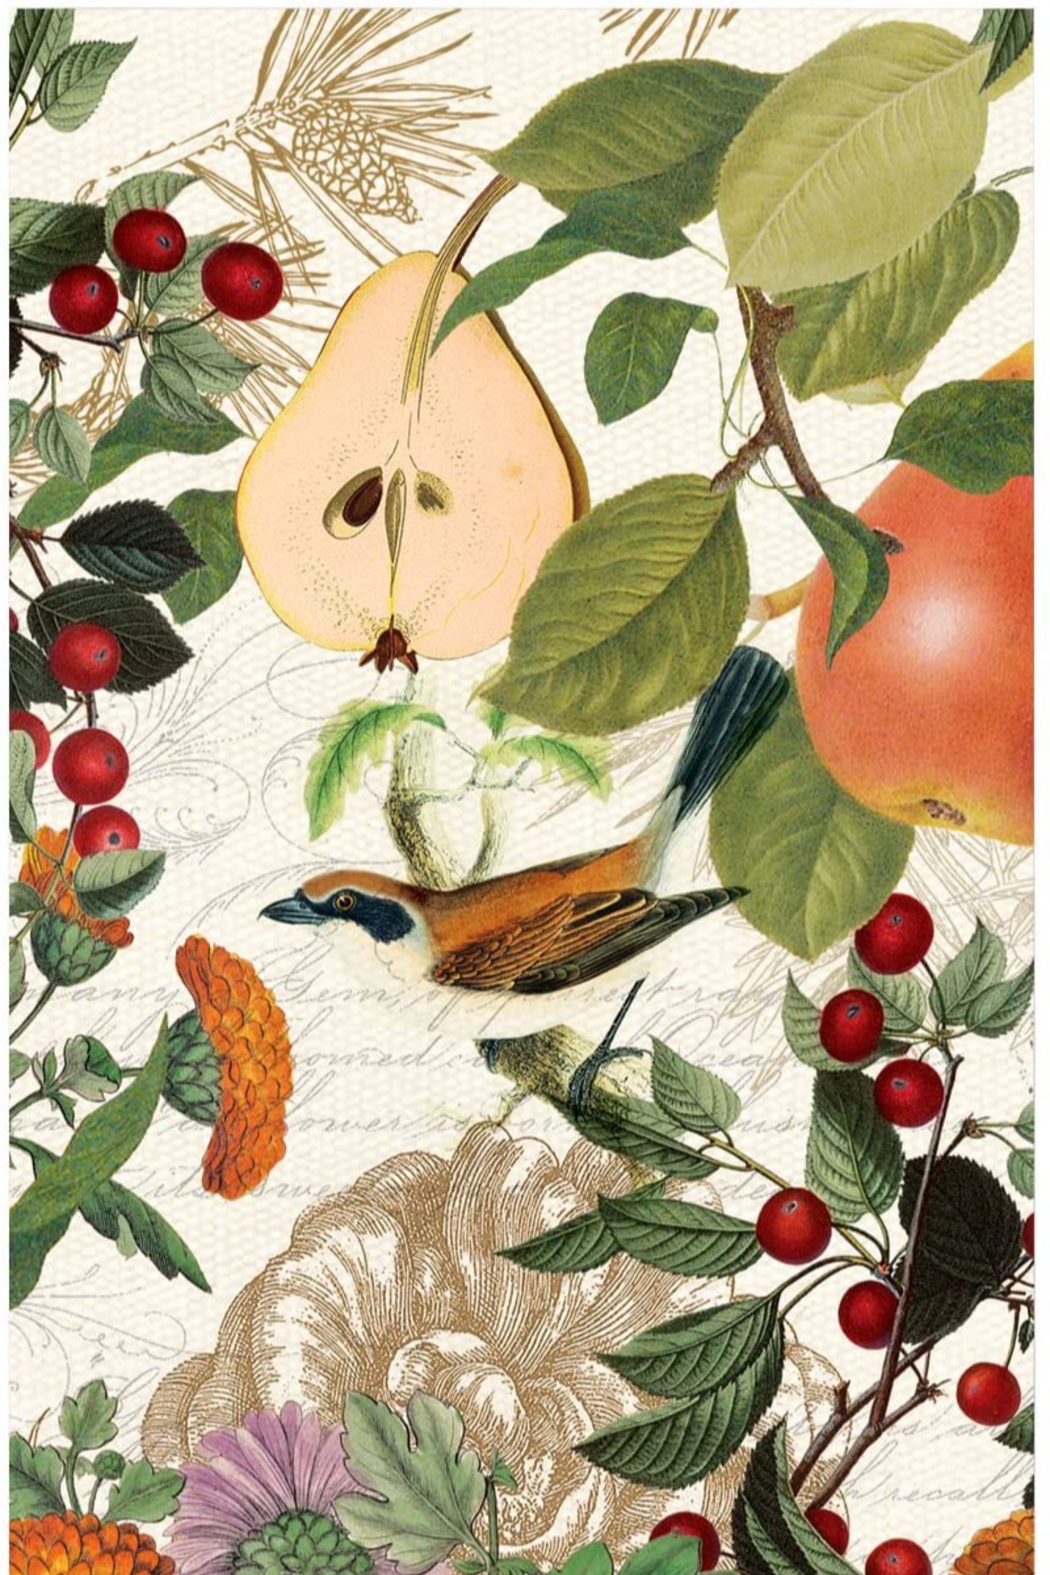 Michel Design Works In A Pear Tree Paper Napkins (15) - Main Image